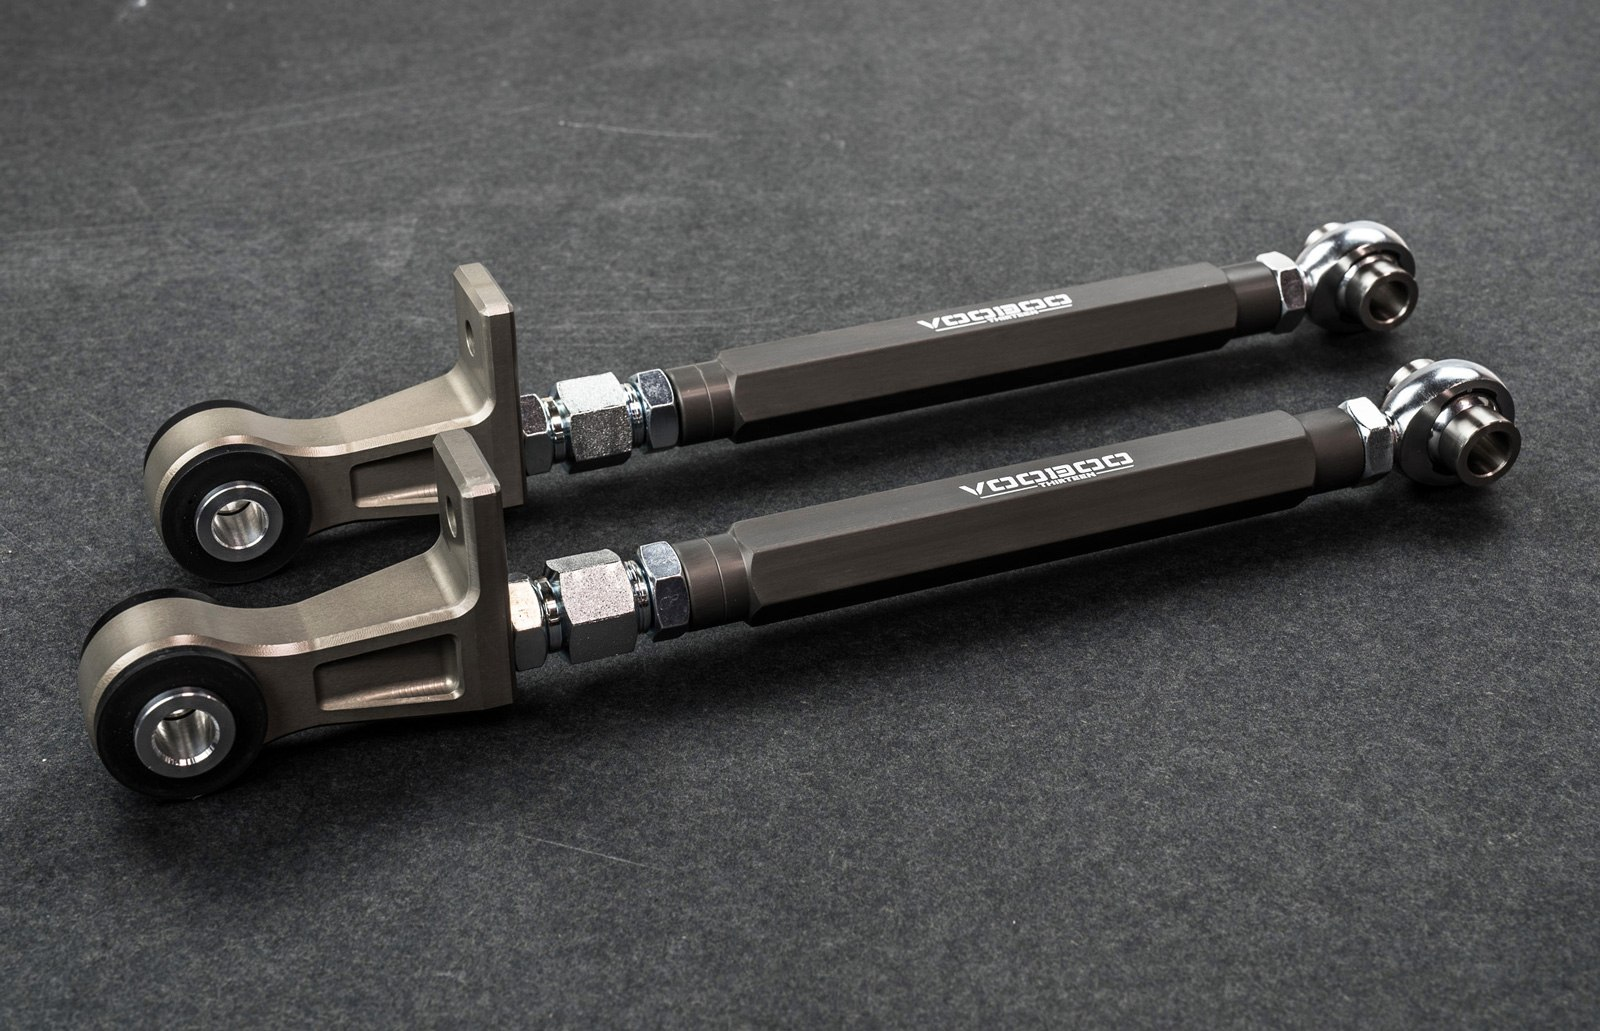 Voodoo13 WRX STI Rear Lateral Link Arms